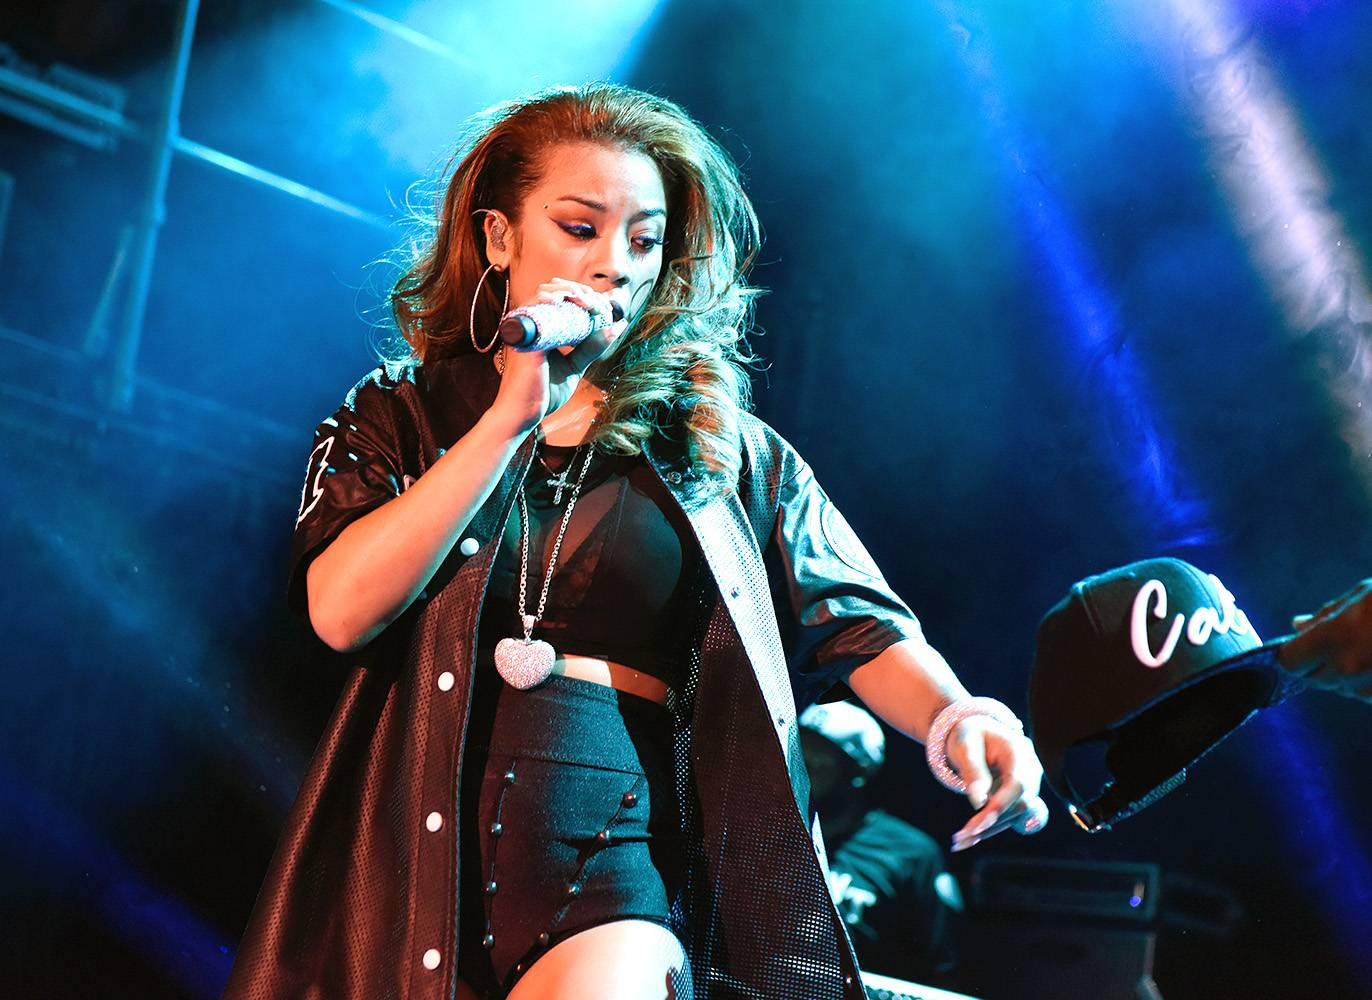 """Keyshia Cole, 'She' - Keyshia Cole unearths a new side of herself on this single from her albumPoint of No Return. """"It's one of them nights...Getting high off my own supply feels so right,"""" she croons.(Photo: Dave Kotinsky/Getty Images)"""